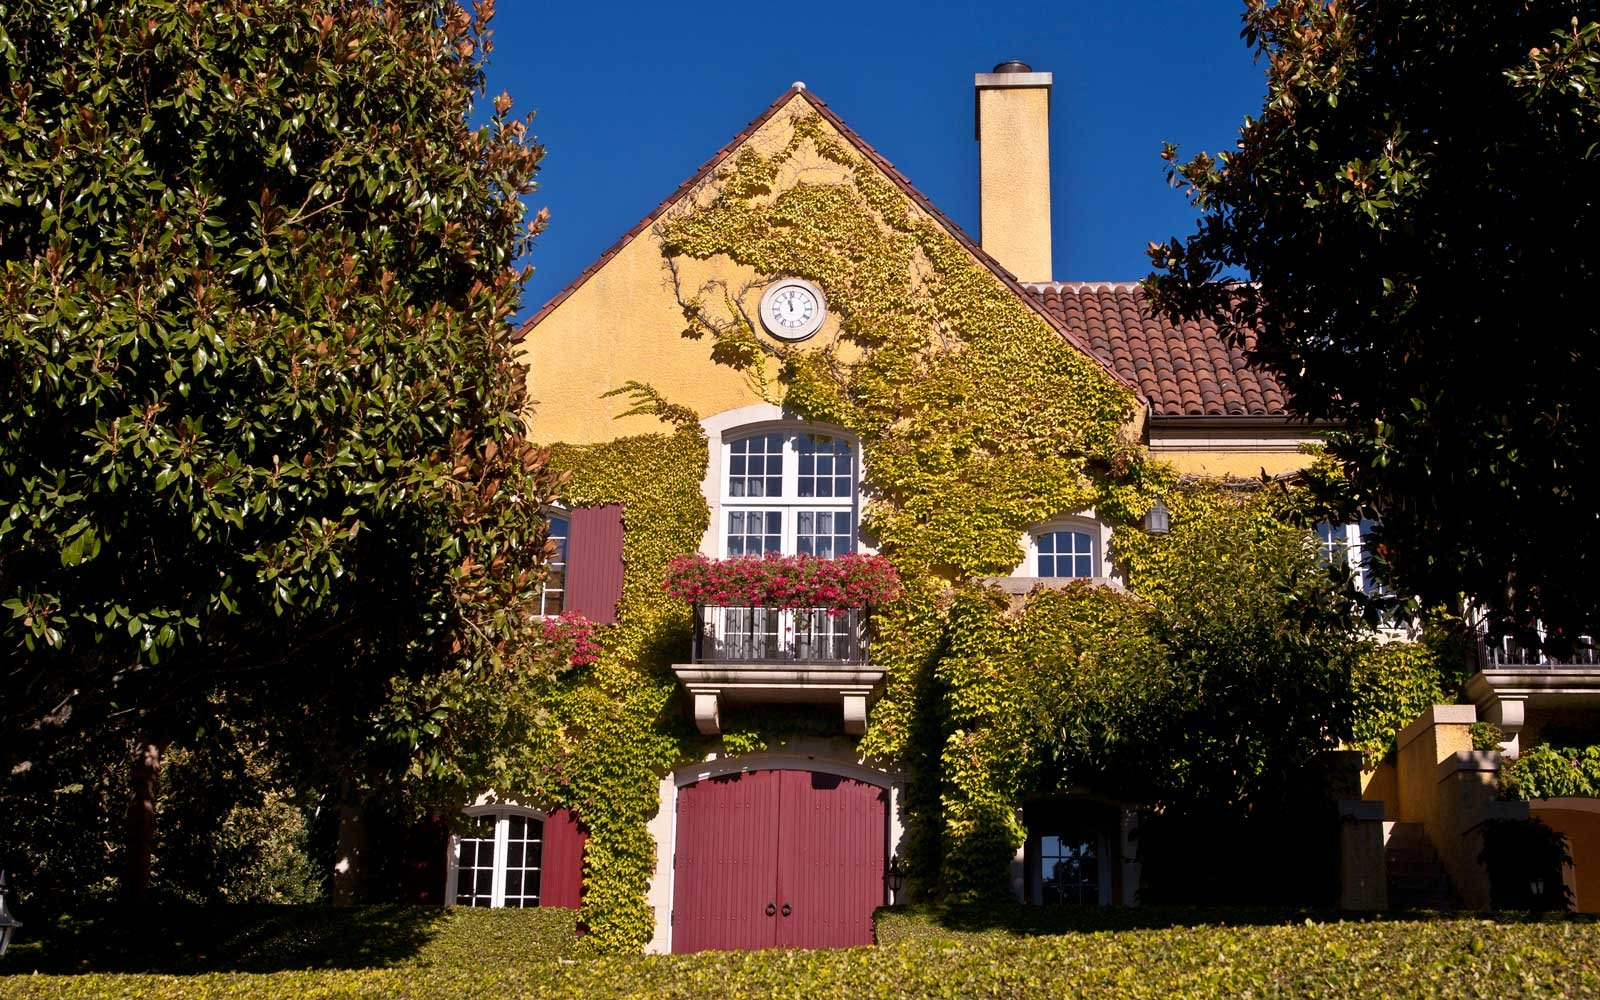 The ivy-covered exterior of Jordan Vineyard & Winery